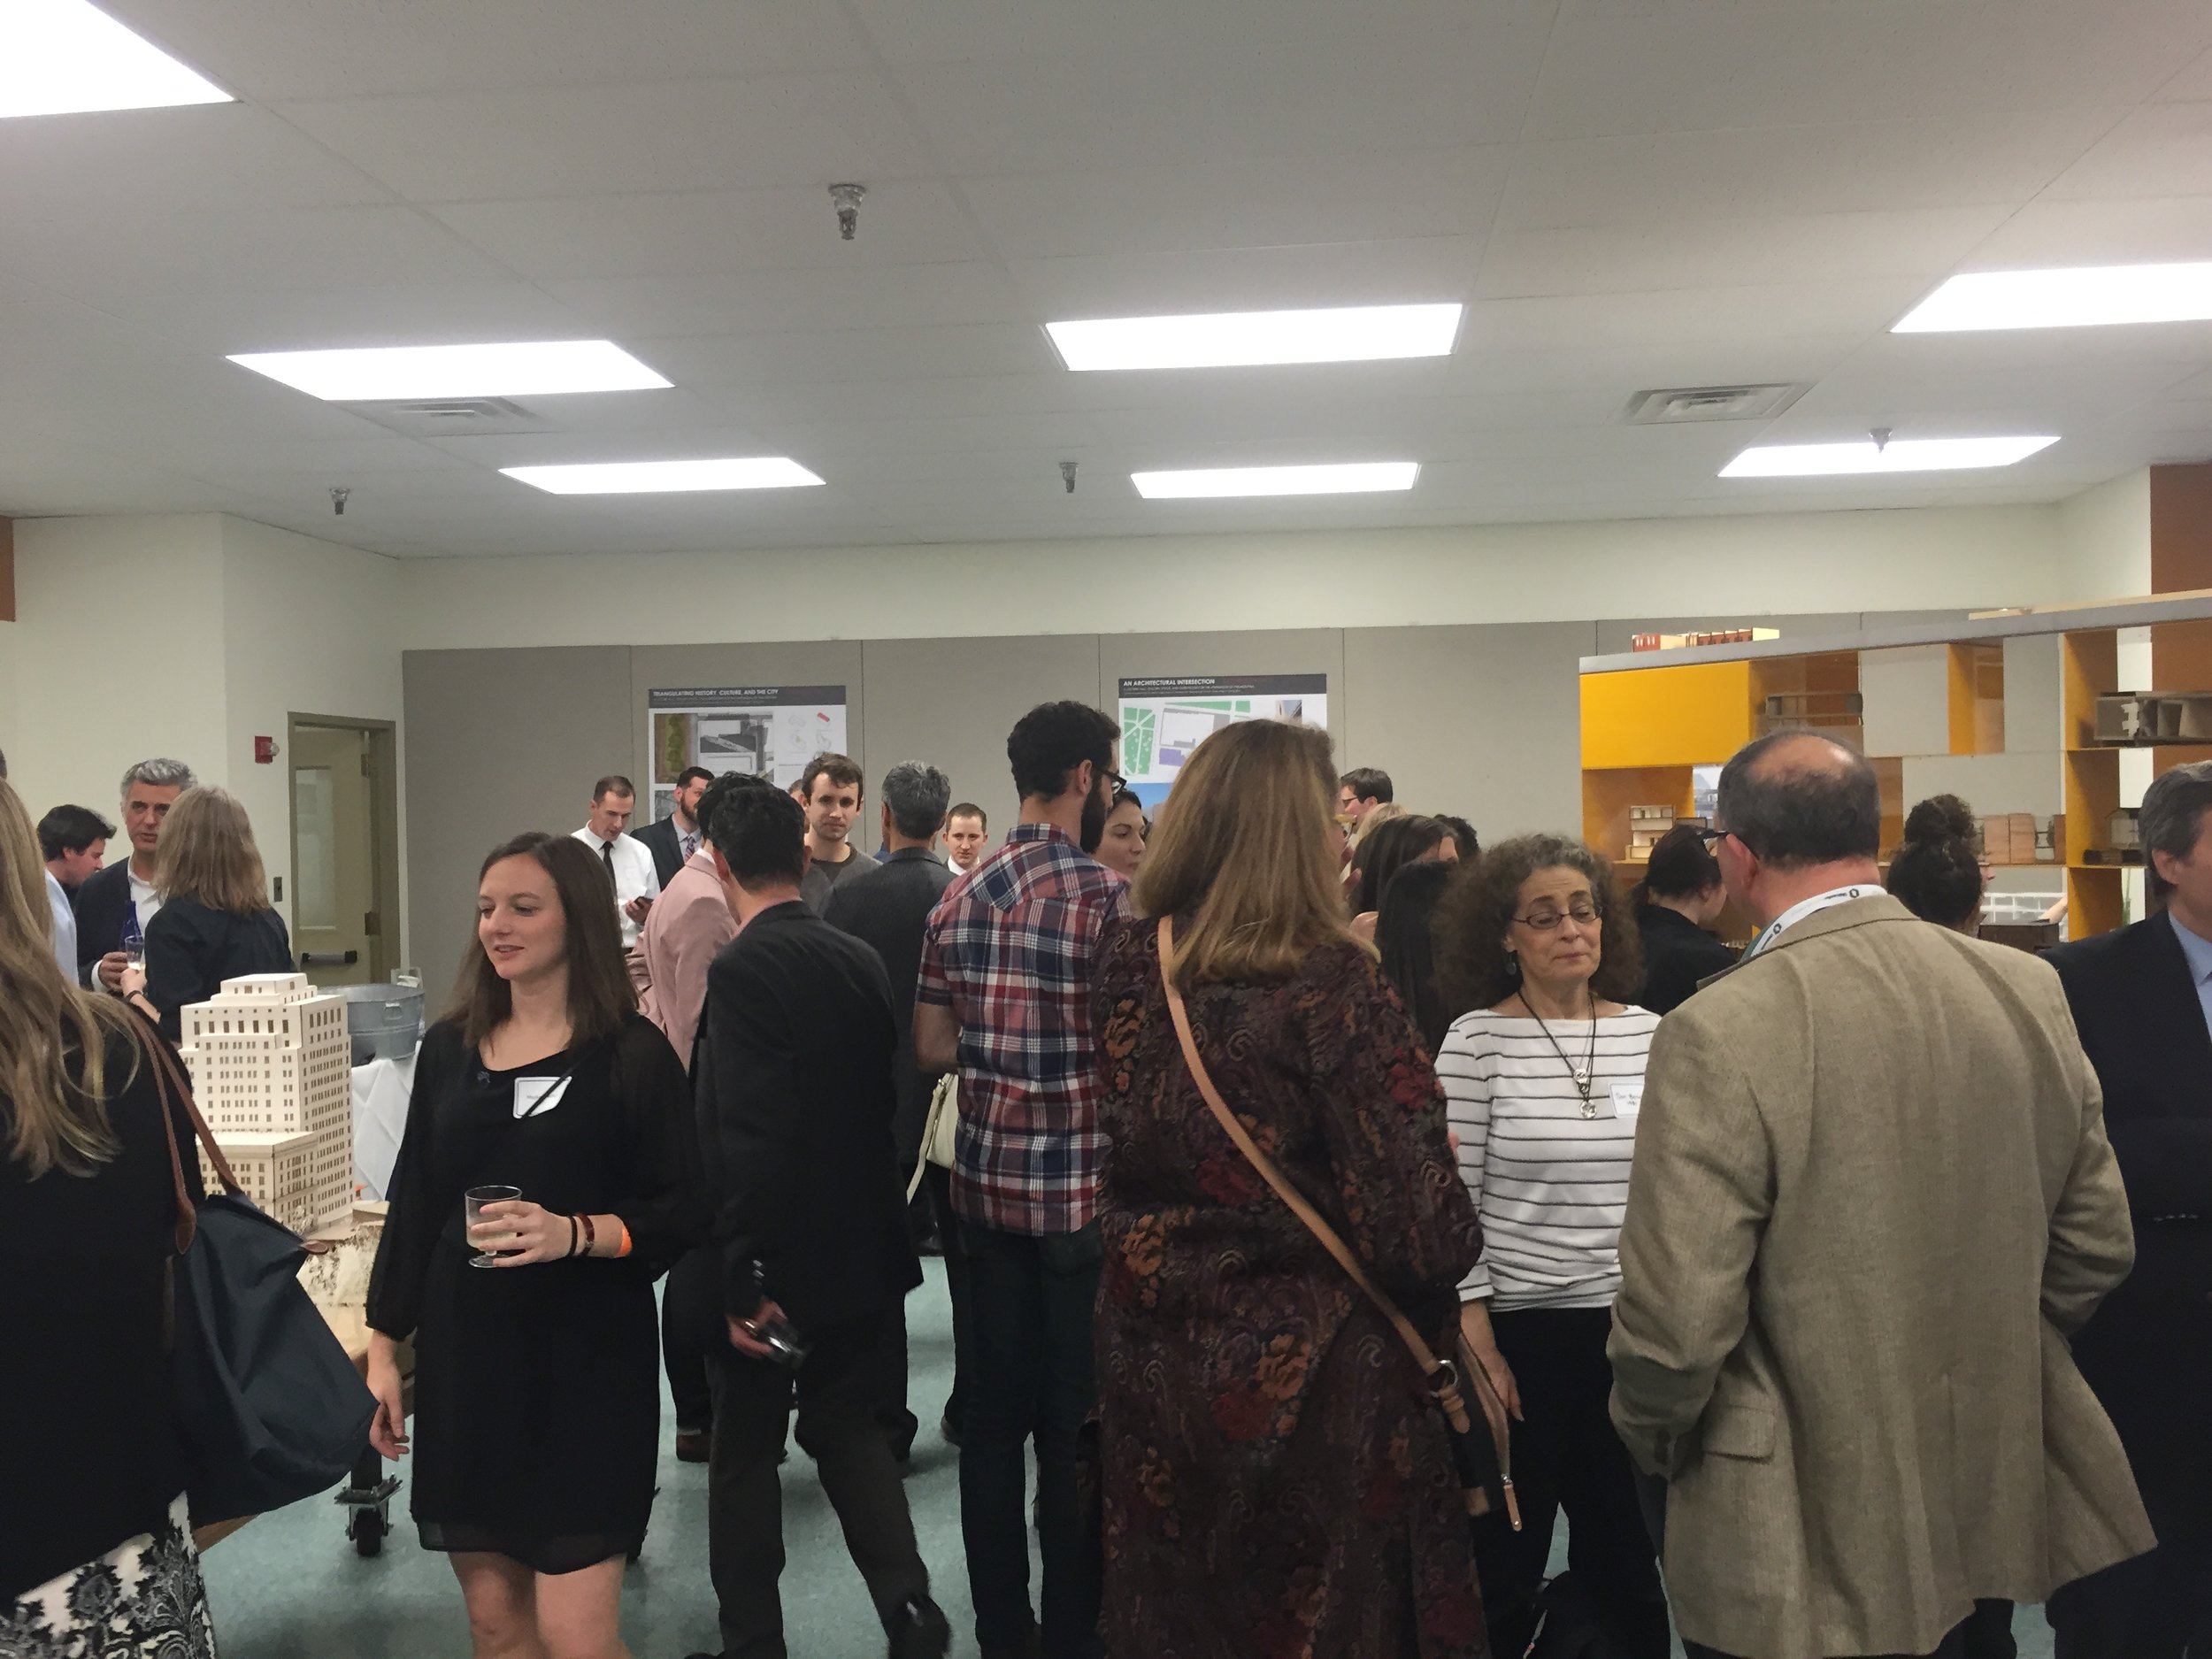 Scenes from a special PSU Architectural Alumni Reception during the AIA National Convention Philadelphia in May.